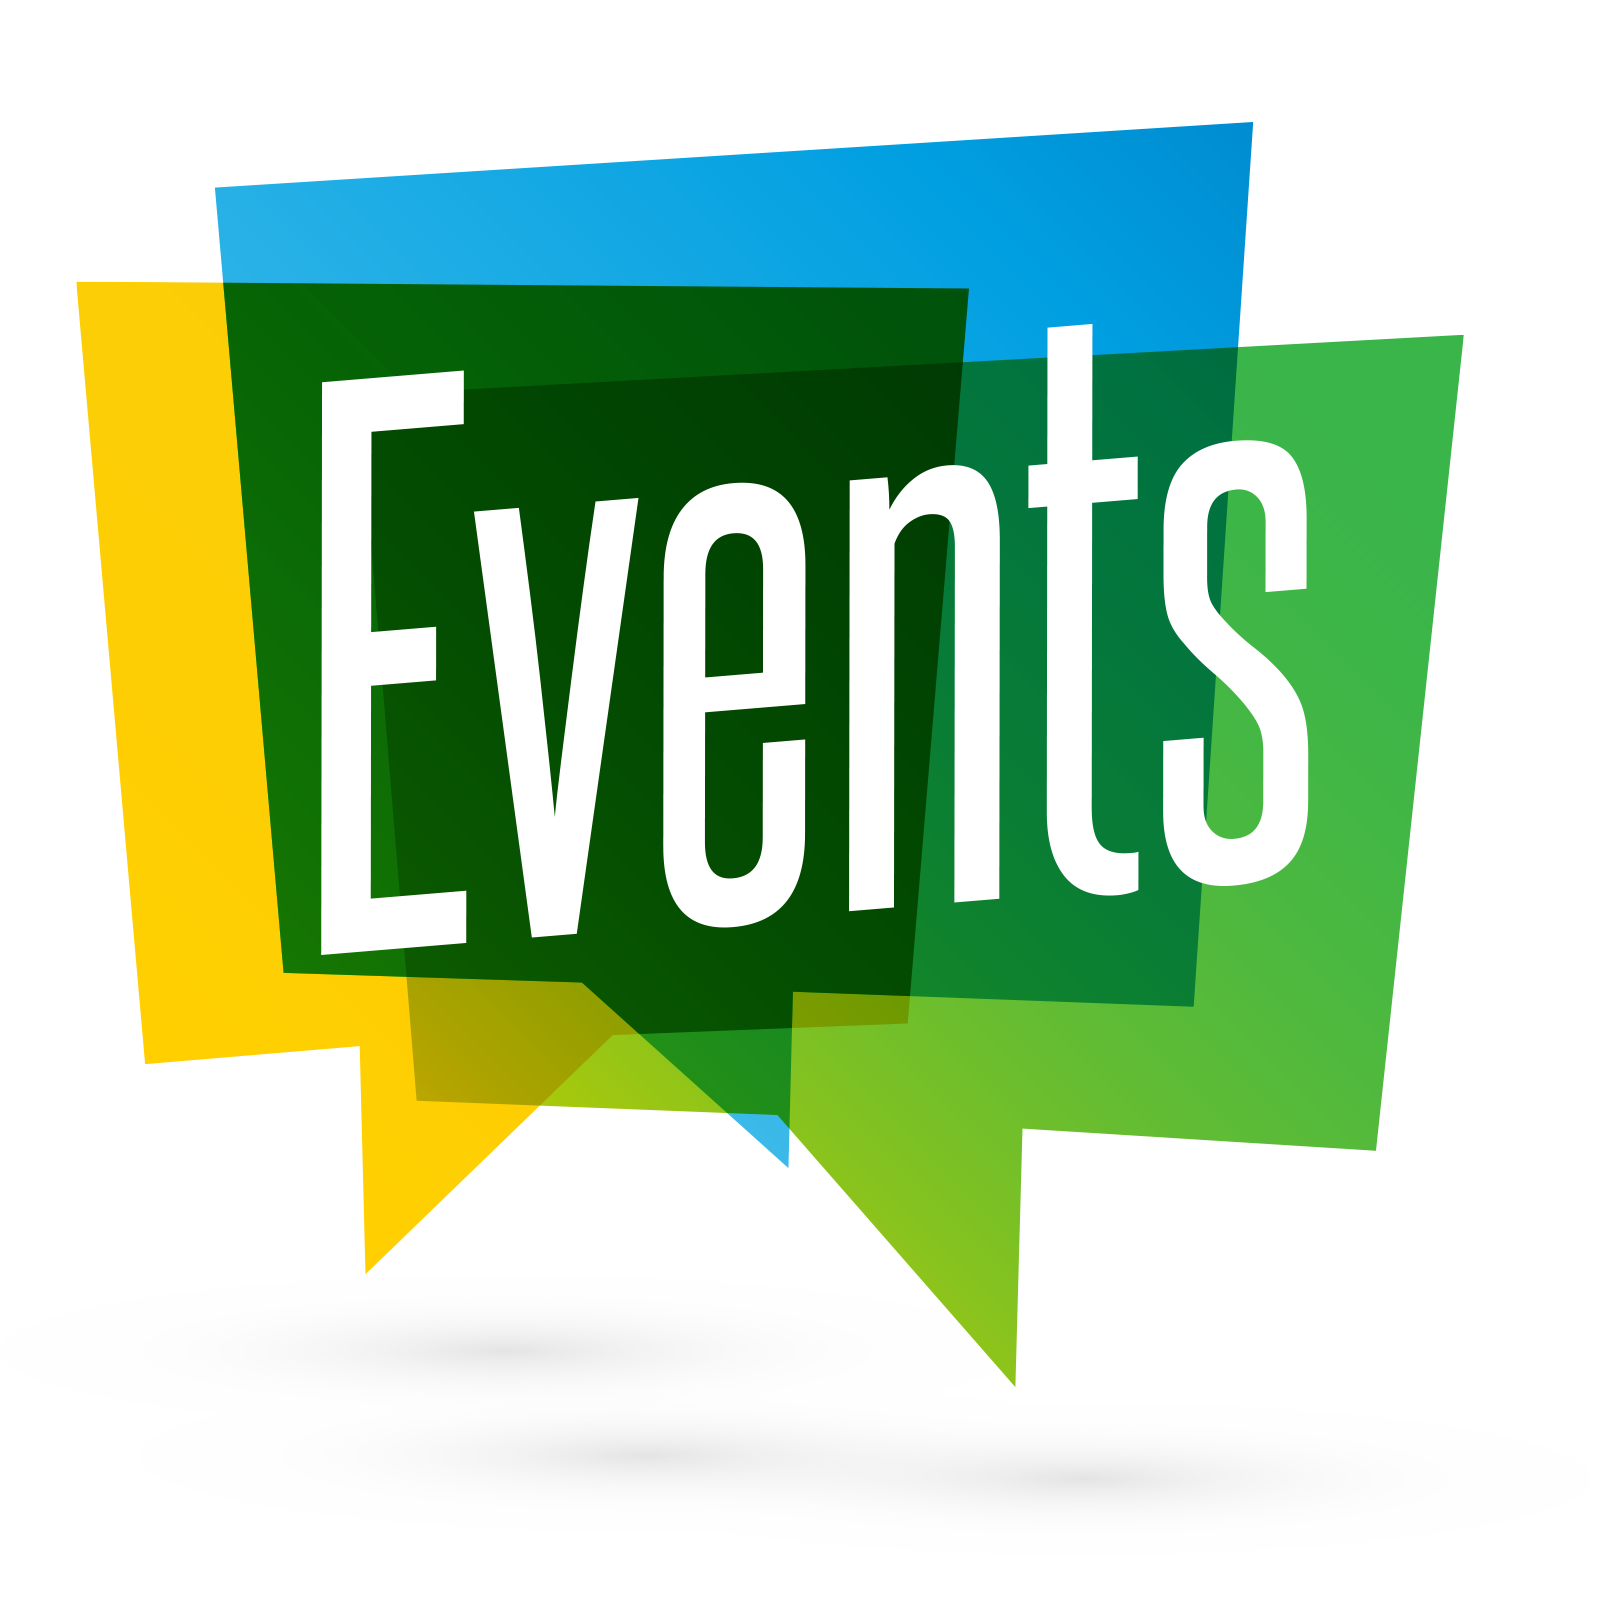 710146 events_header